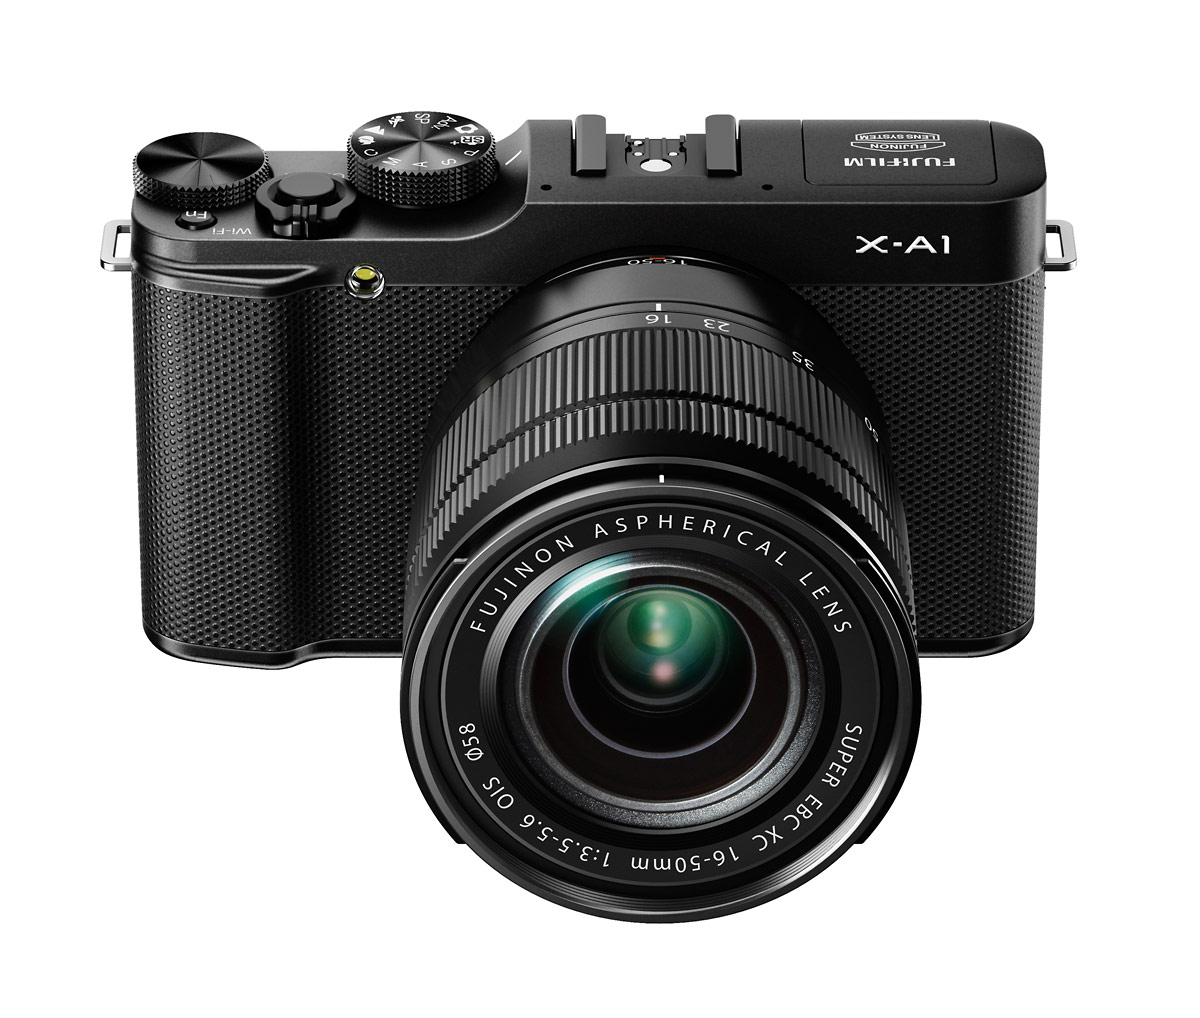 Fujifilm X-A1 Mirrorless Camera With 16-50mm Kit Lens